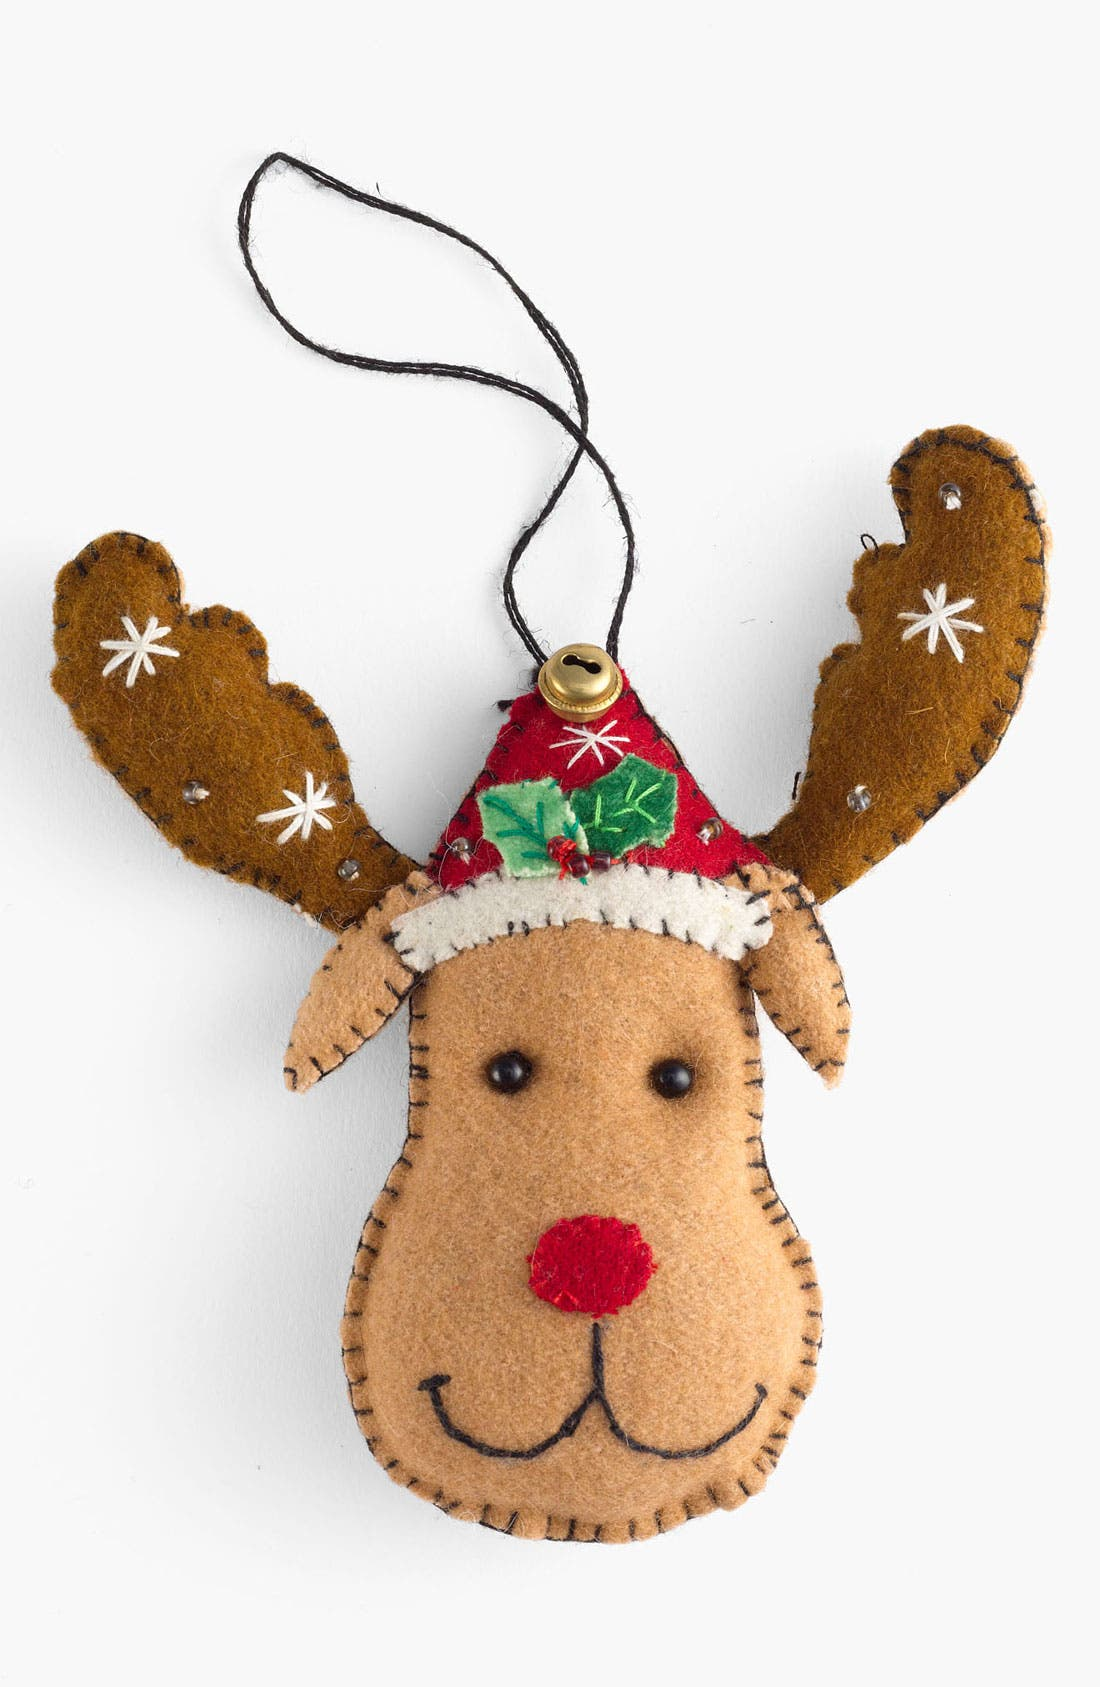 Alternate Image 1 Selected - New World Arts 'Marvick with Antlers - Puffy' Ornament